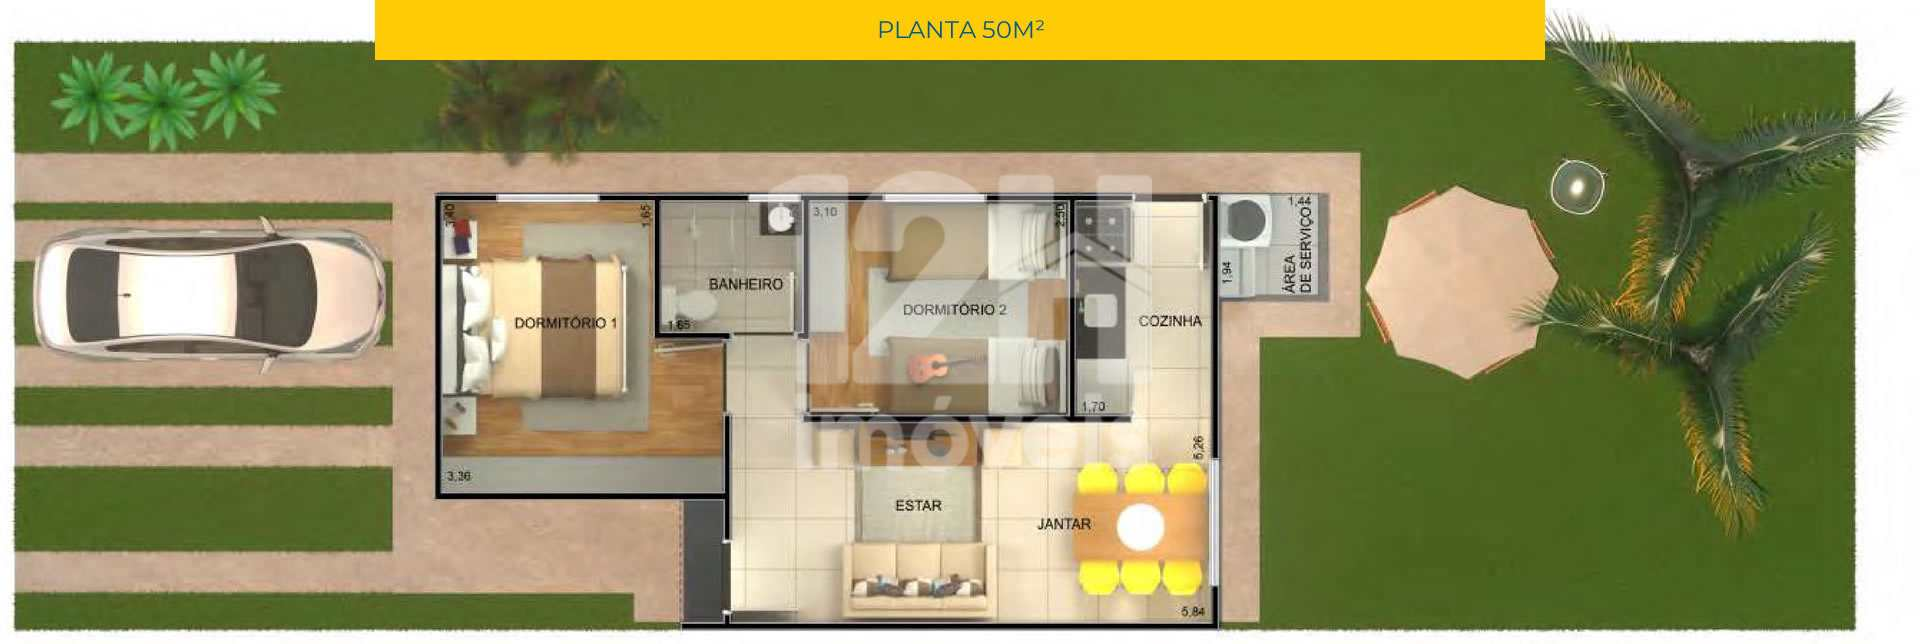 Casa com 3 dorms, Vale do Sol, Piracicaba - R$ 210 mil, Cod: 2